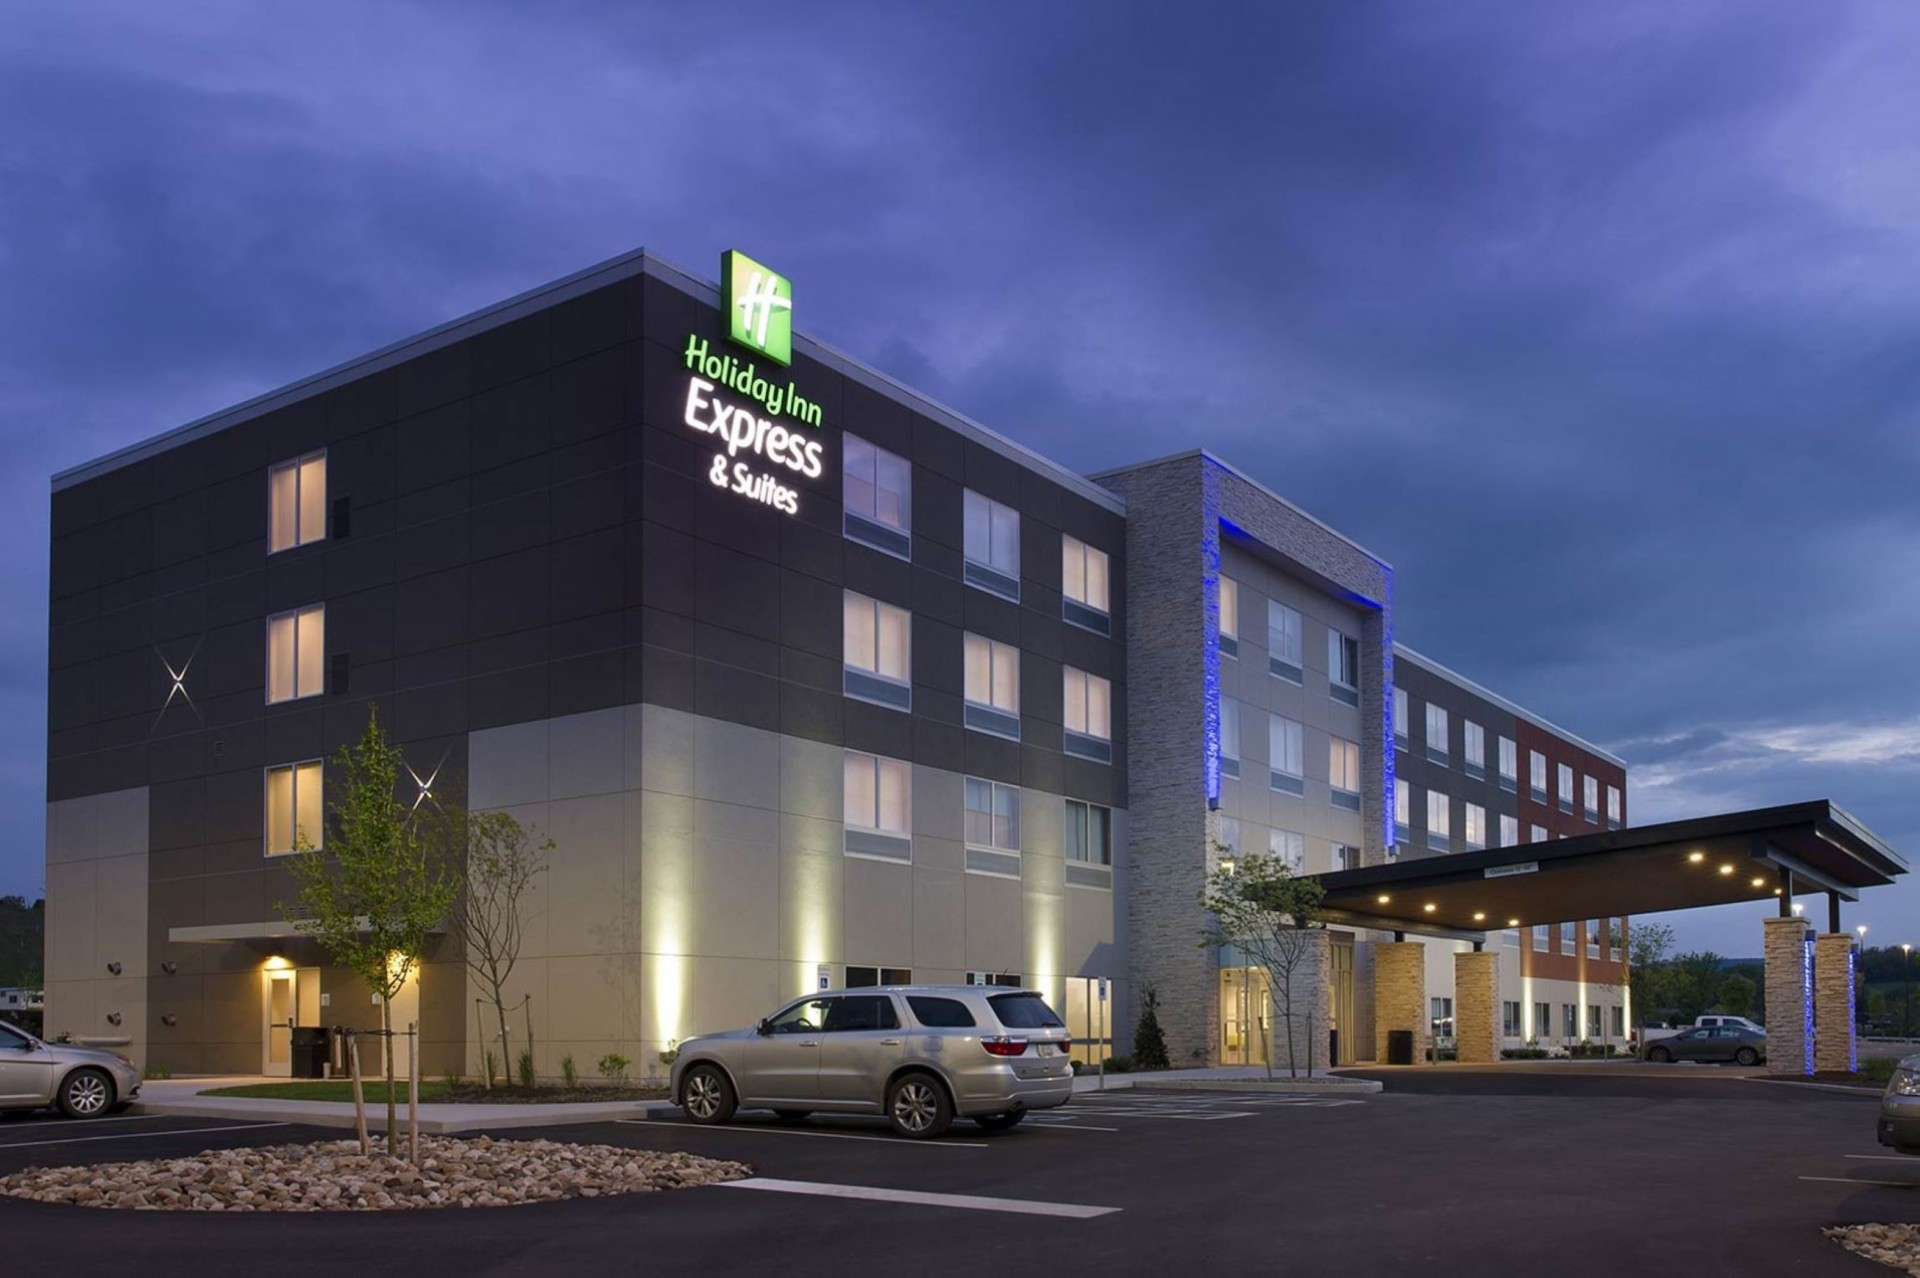 Holiday Inn Express & Suites - Downtown Auburn